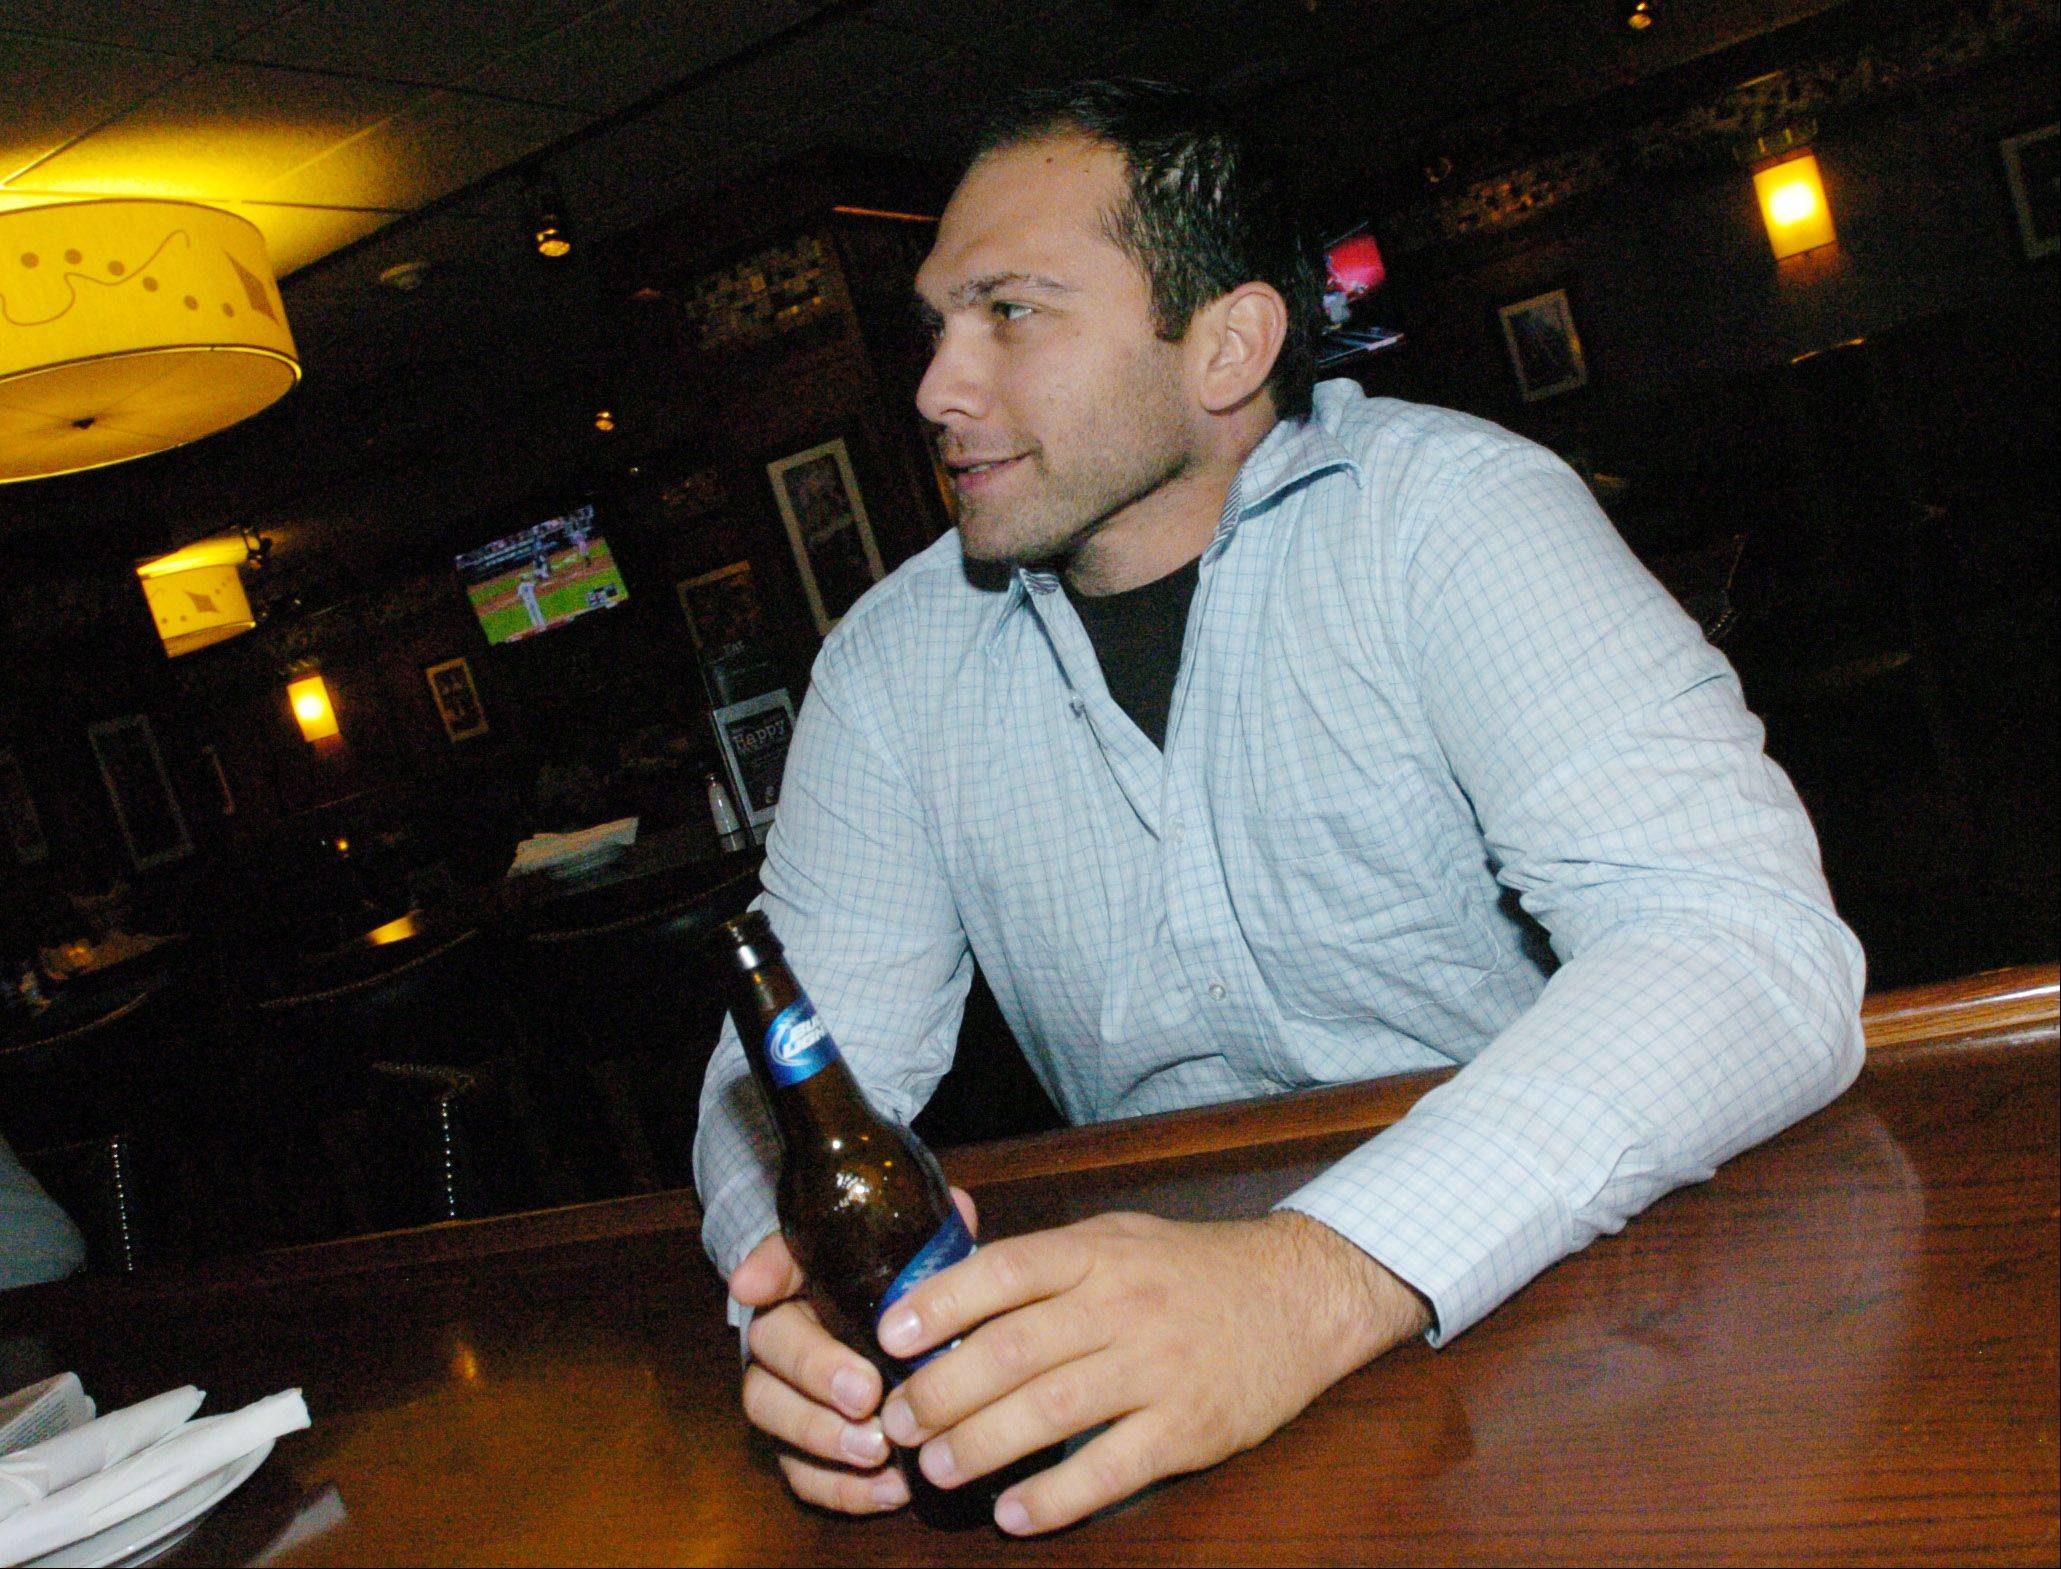 Joe Kasprzykof of Oak Lawn enjoys a cold beer at Bar Louie in Oakbrook Terrace.